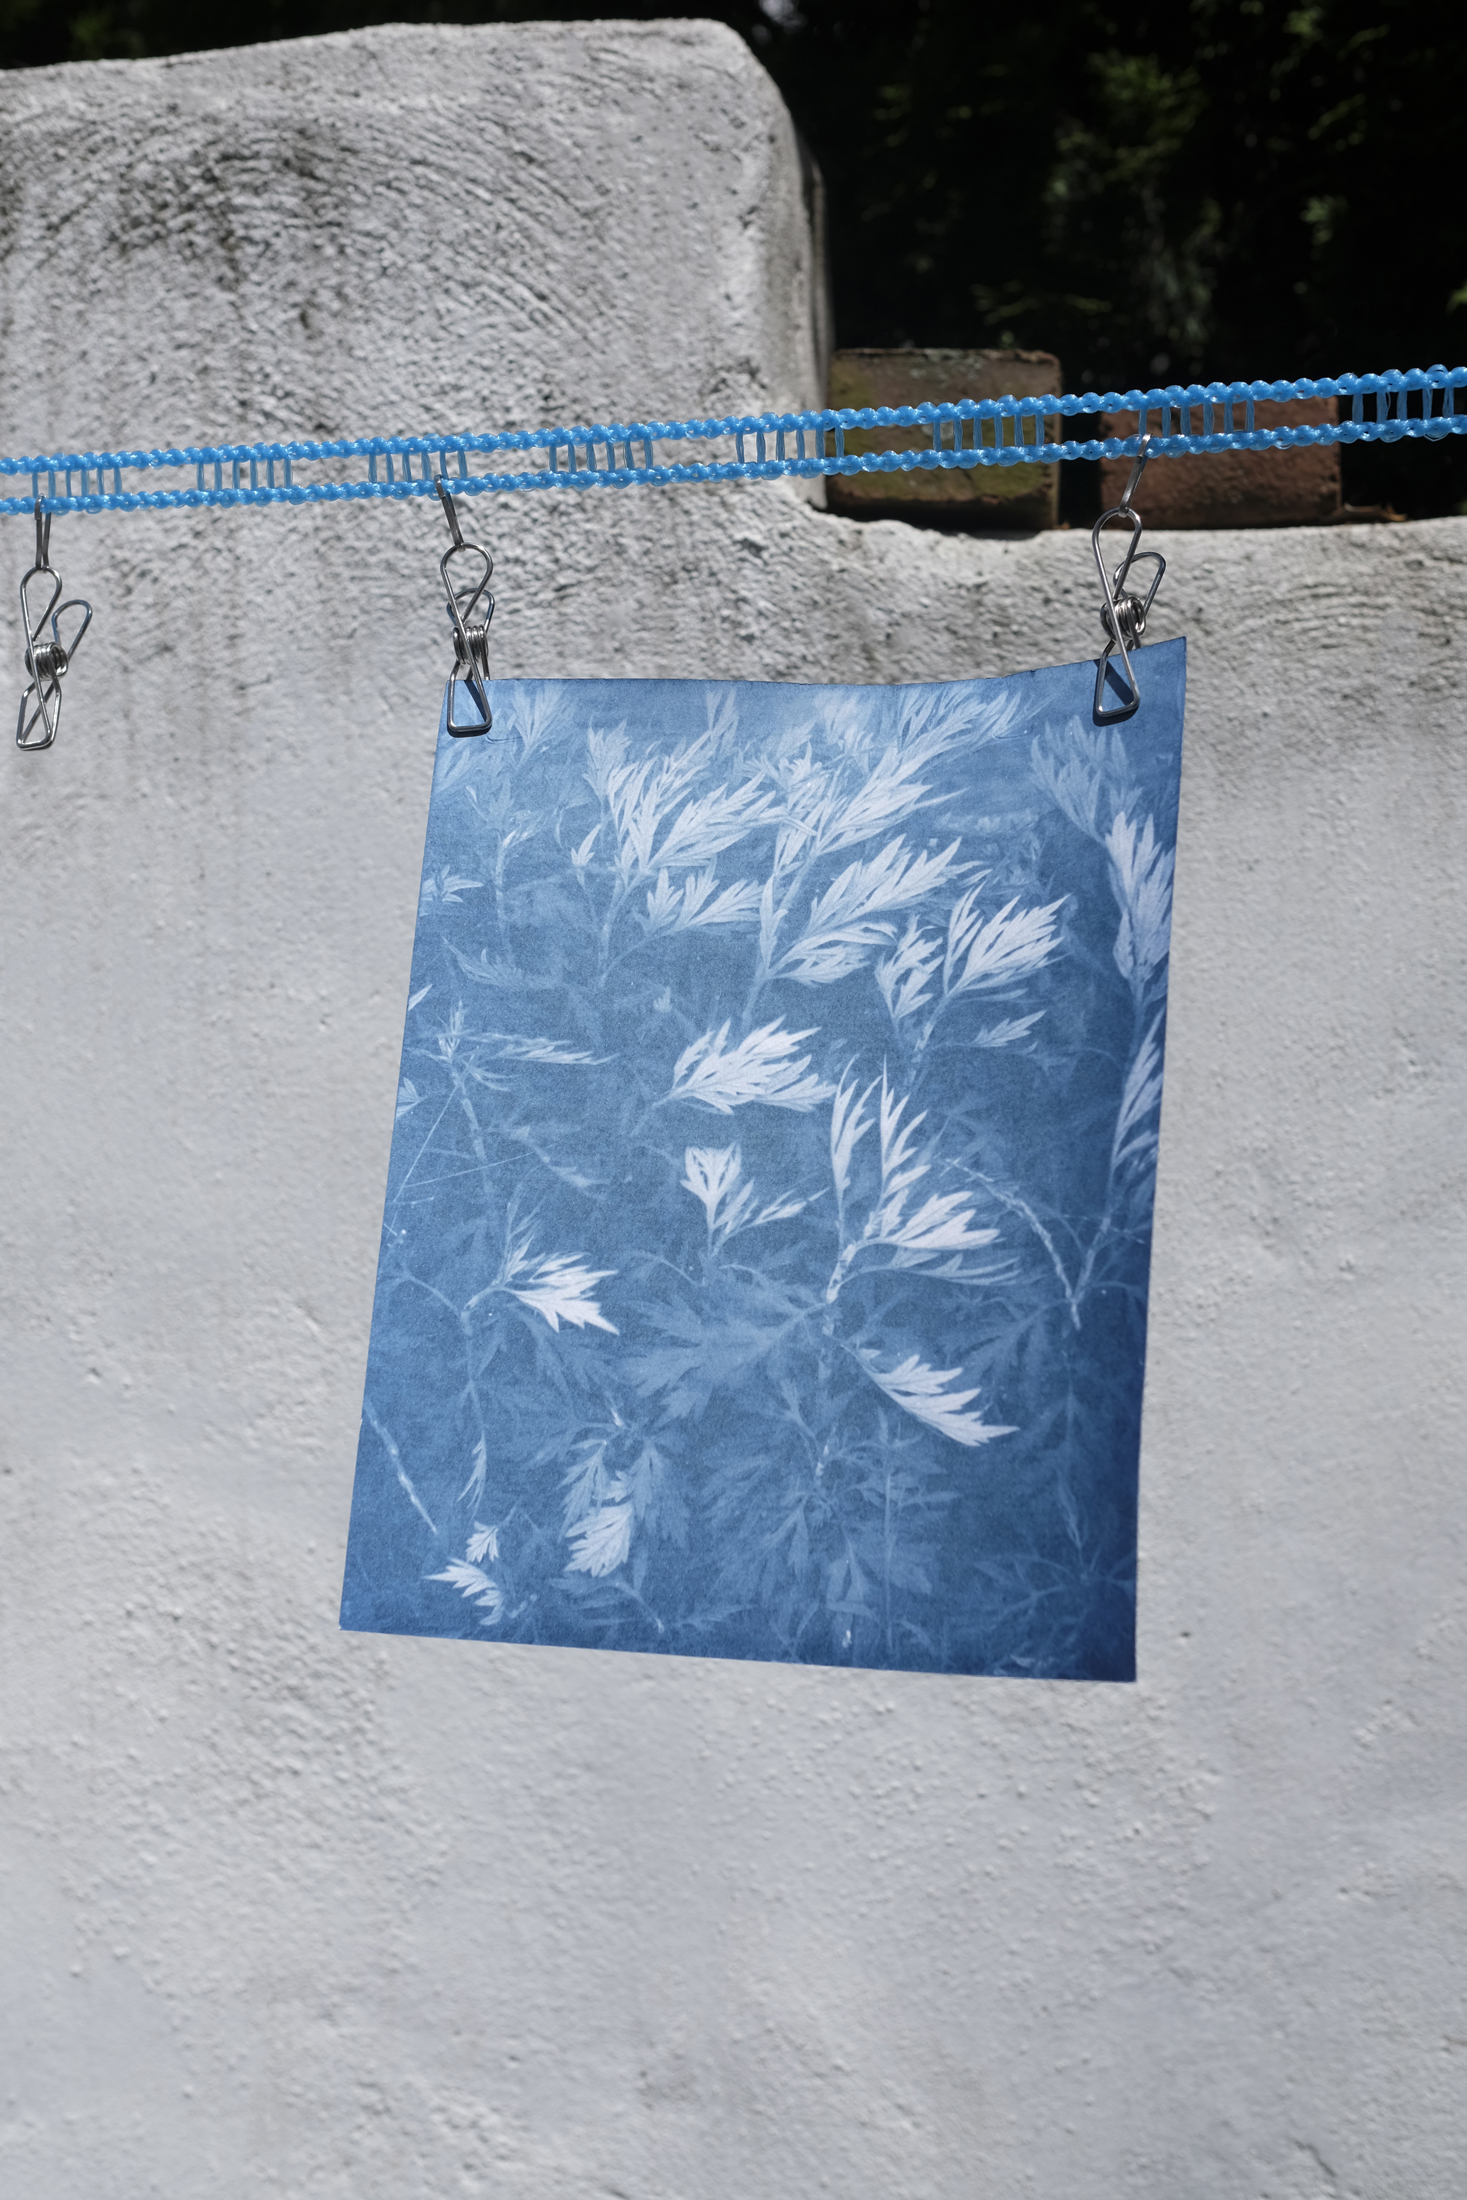 """If You Build It, They Will Come (In Progress) - If You Build It, They Will Come is a series of cyanotypes that explore the connectivity between humans and nature, and the ways in which they overlap within the built environment. This series focuses on """"weeds"""" in Philadelphia during a time of mass re-development – tracking their growth before, during, and after construction projects on """"vacant"""" land.If You Build It, They Will Come explores how these complex, valuable, and overlooked ecosystems define the spaces they occupy, and the way in which their story is mirrored in the resilience of people working with and against a changing city.*A cyanotype is an blue image that is created by exposing ferric ammonium citrate and potassium ferricyanide to the sun."""